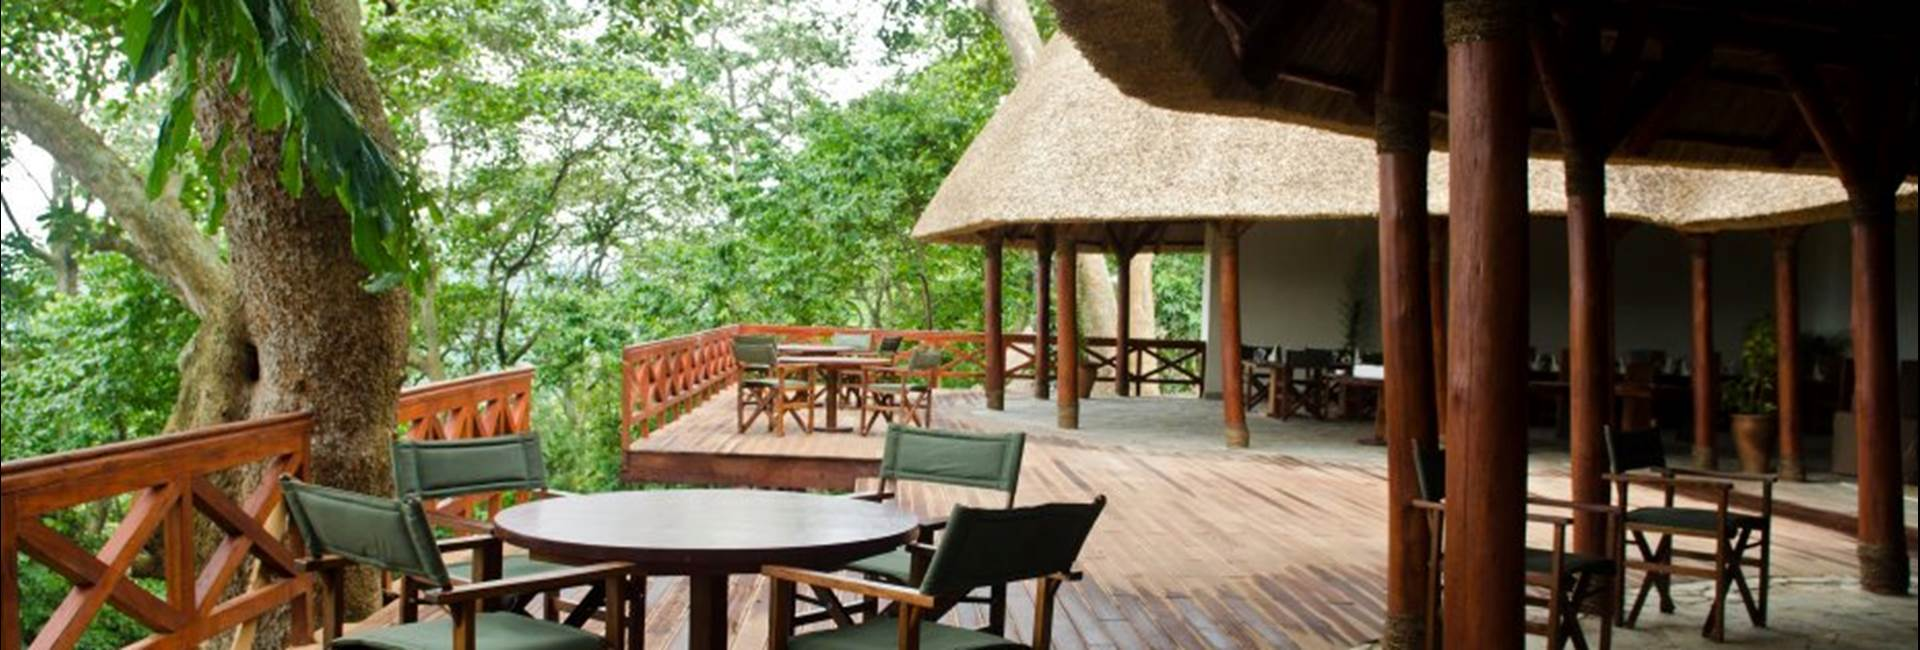 Luxury Gorilla Safari Lodges in Congo